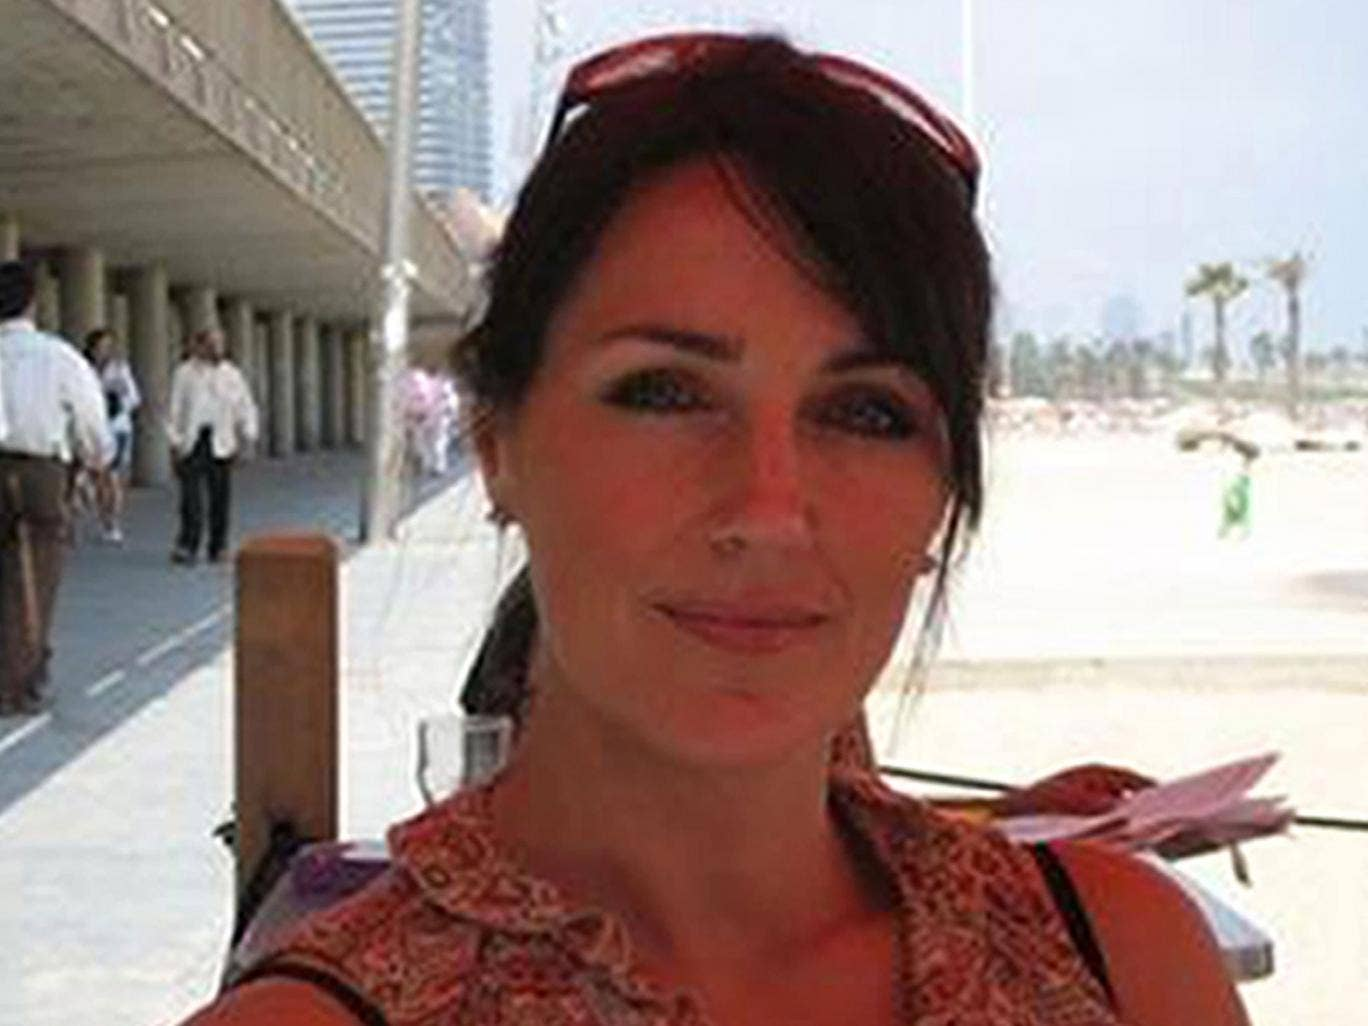 Nicole Falkingham, who was found dead in her car in Liverpool